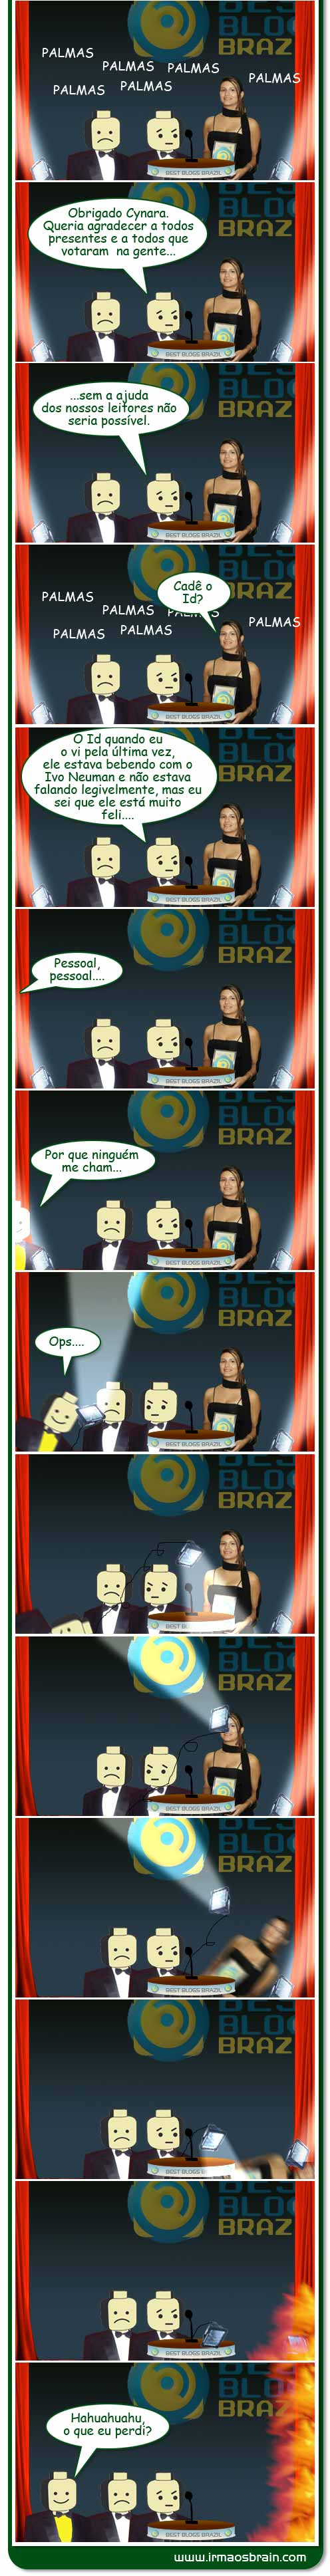 premiacao final 2 And the BBB goes to...